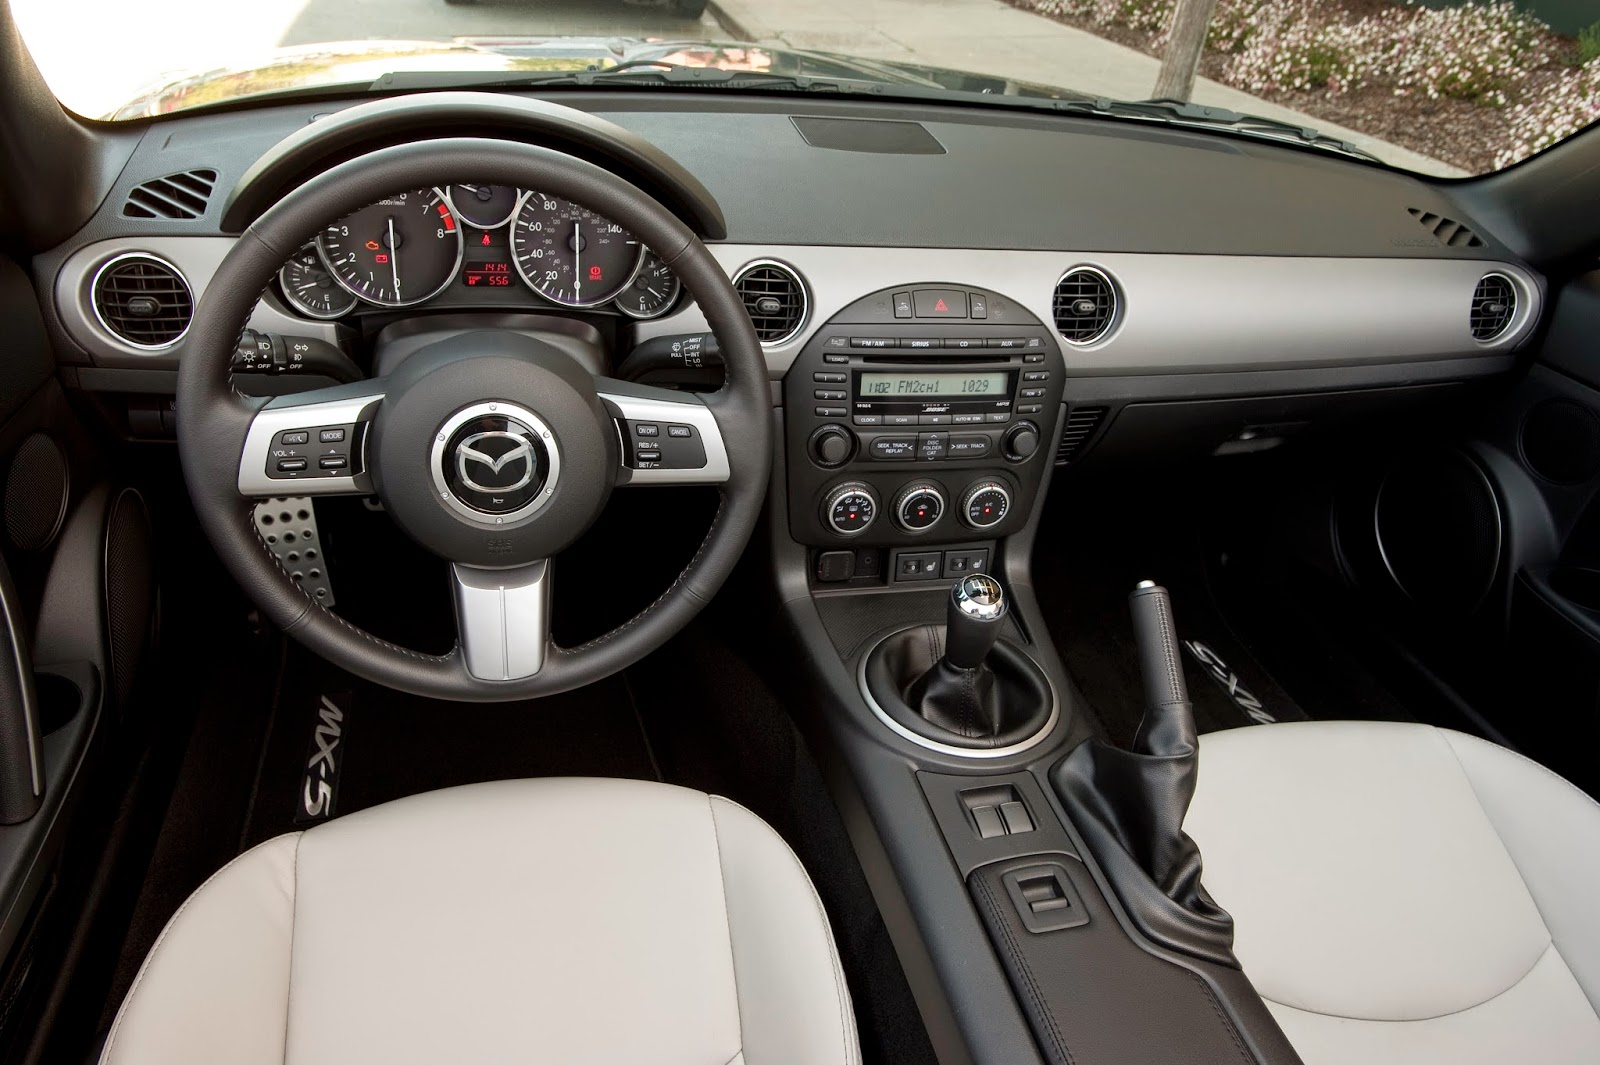 Interior view of 2015 Mazda MX-5